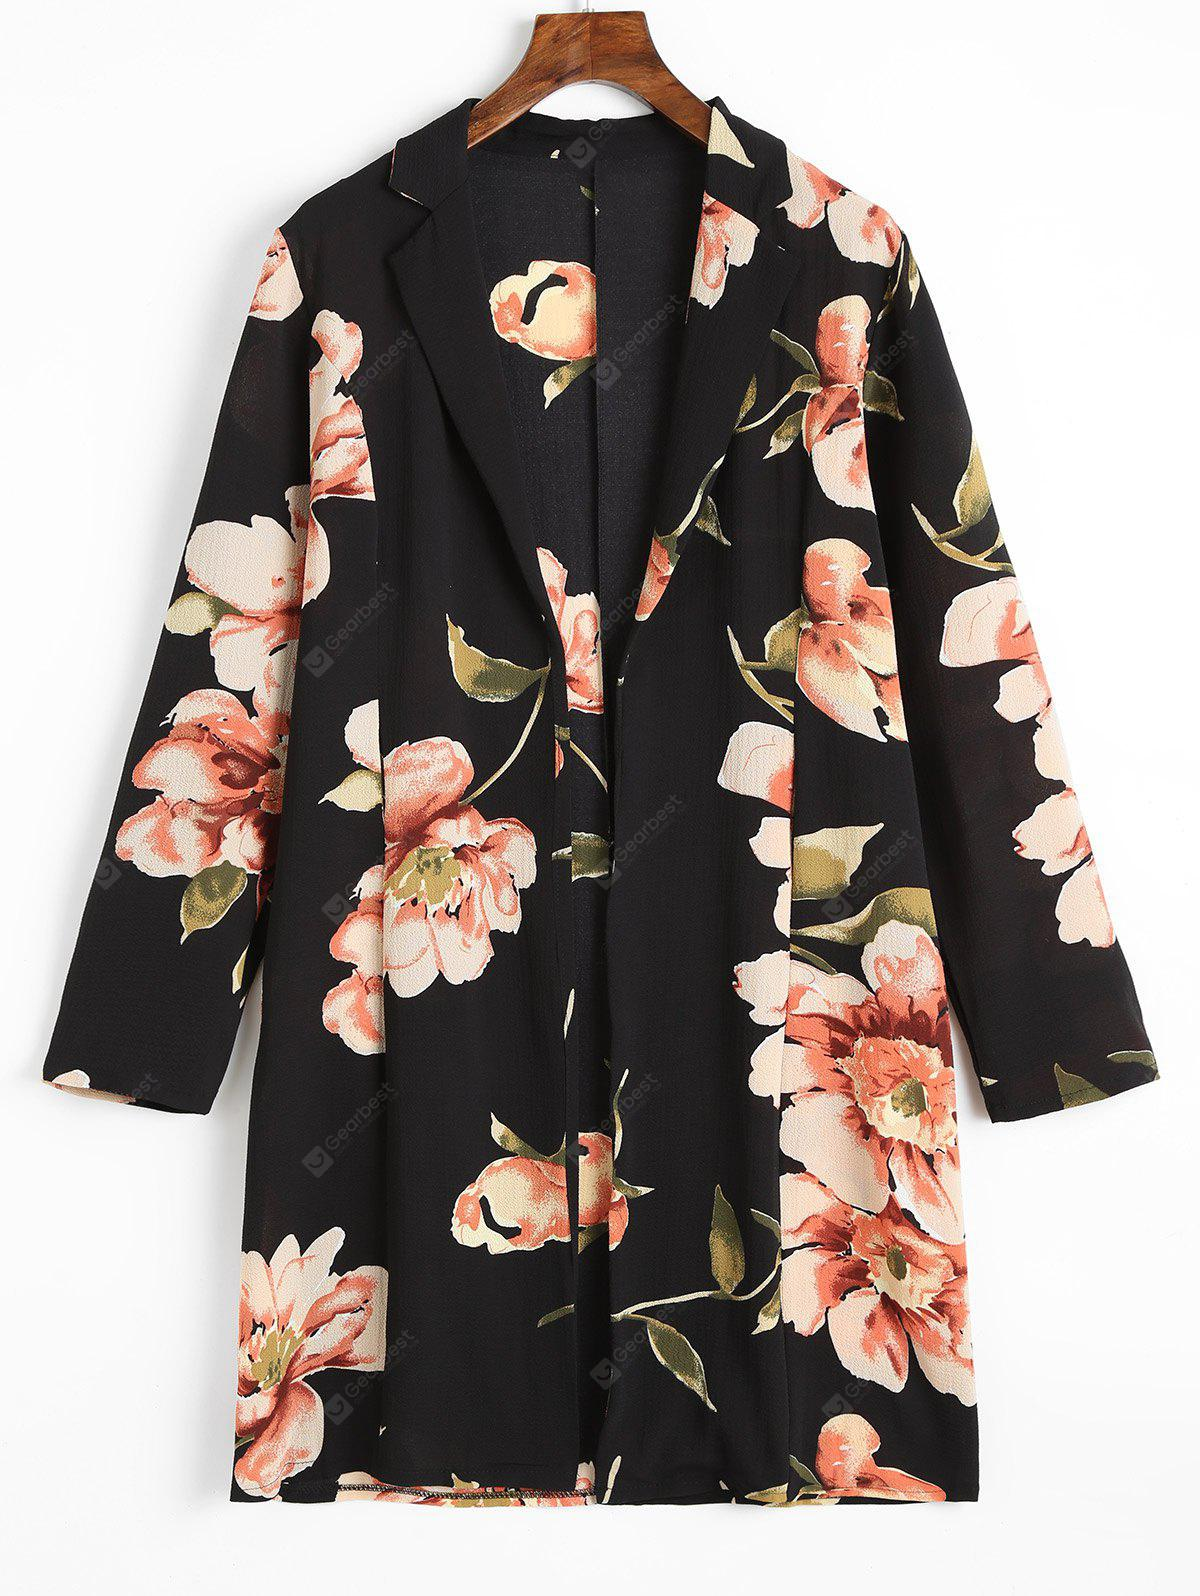 FLORAL, Apparel, Women's Clothing, Blouses